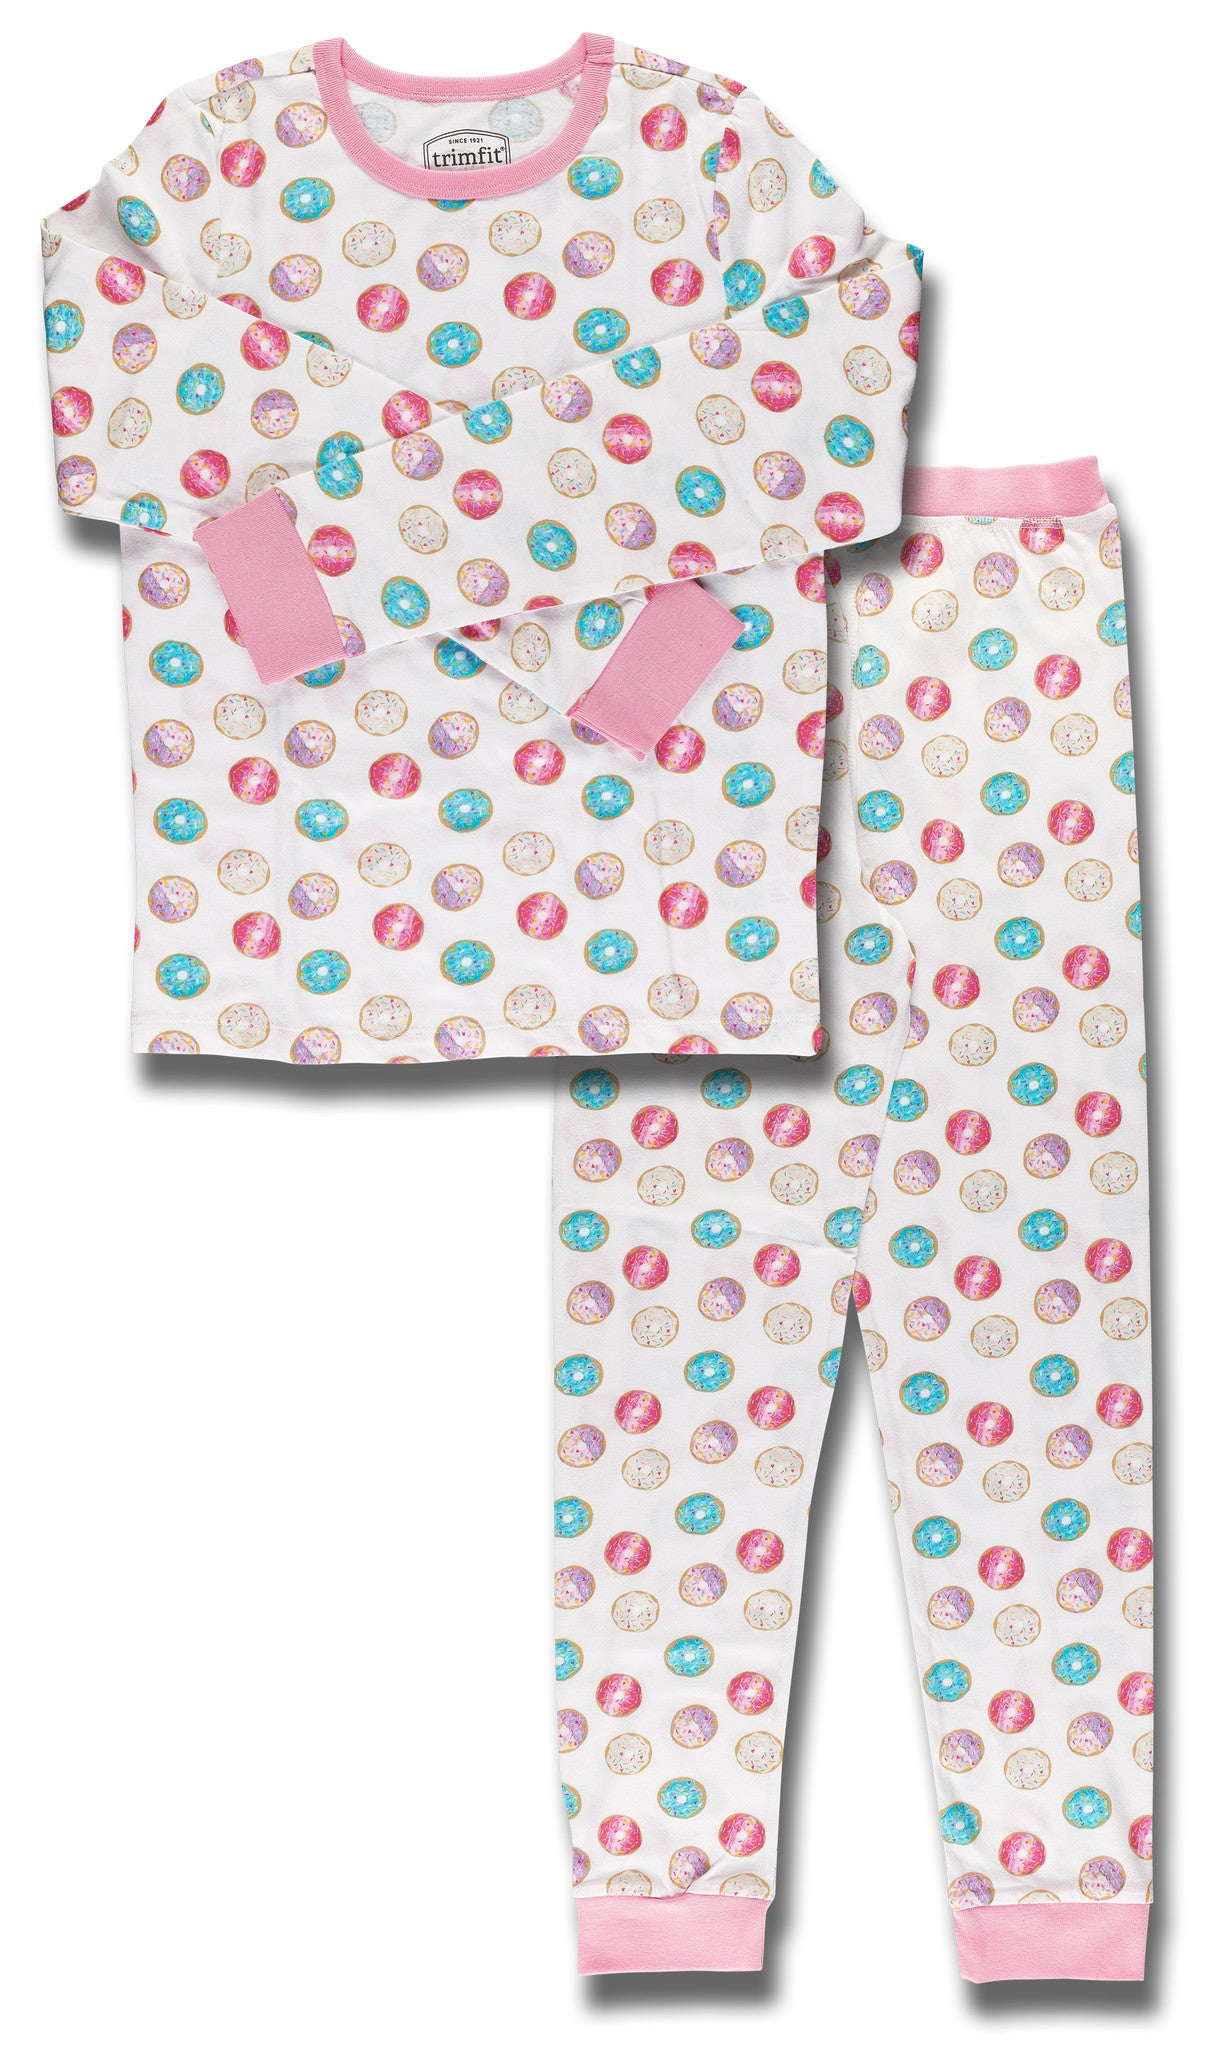 Donuts Organic Cotton Long Sleeve Pajama Set